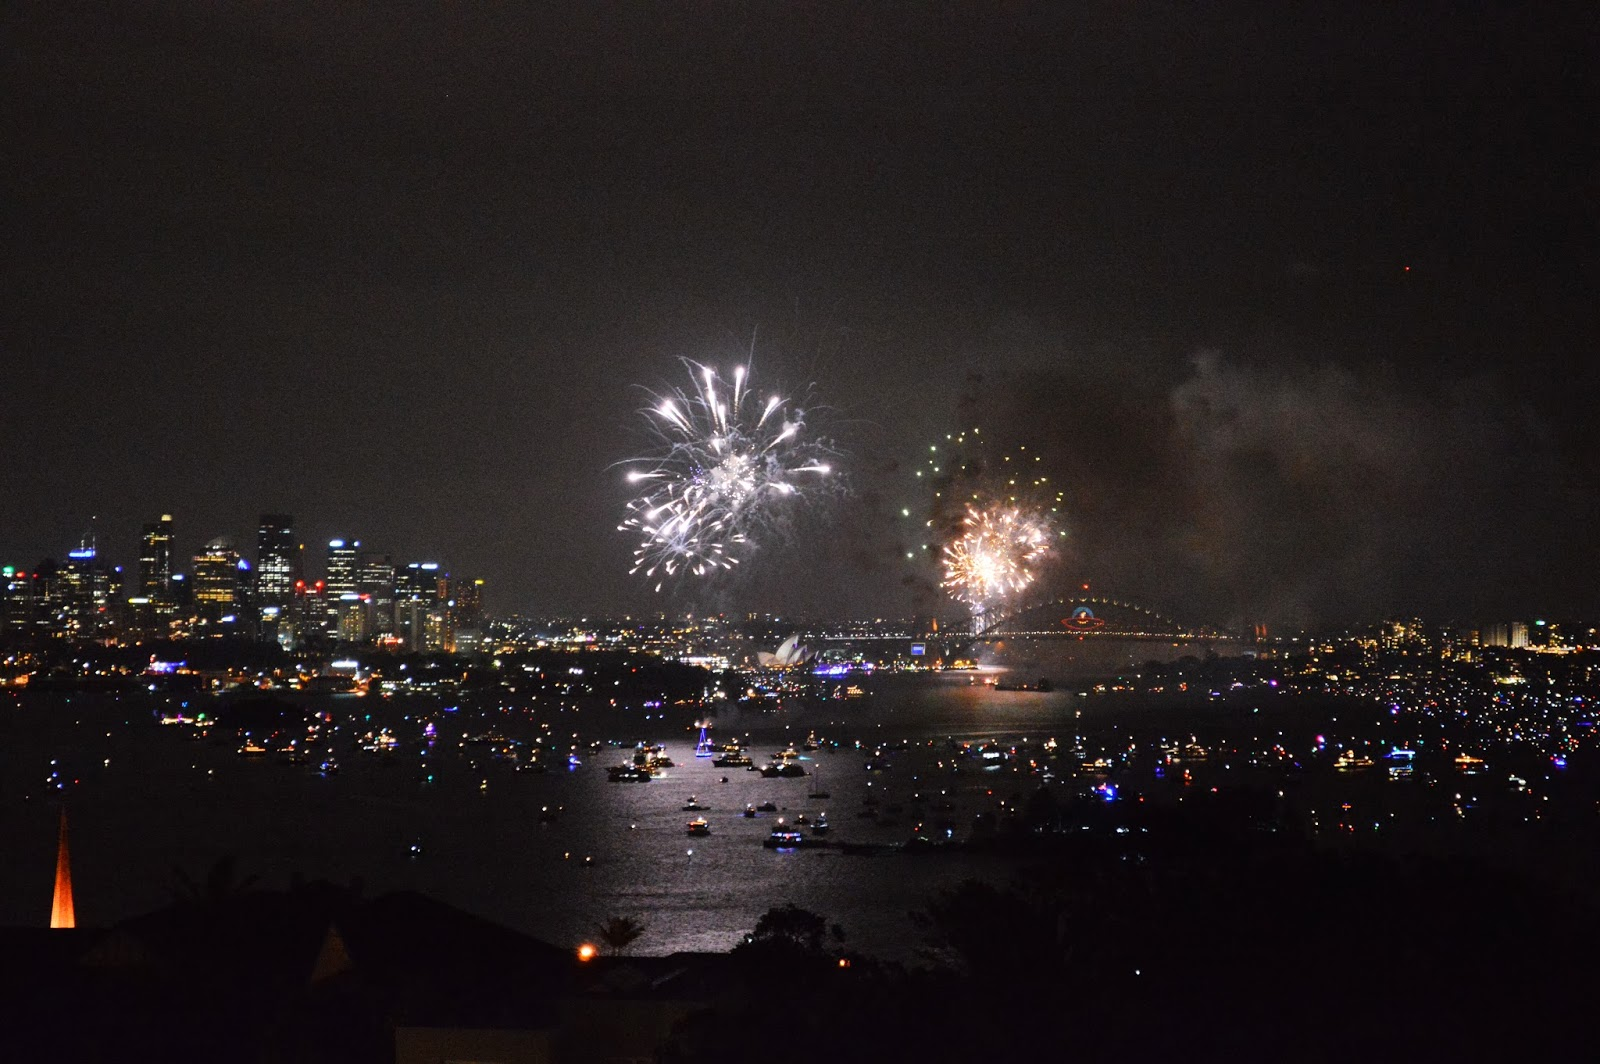 Fireworks exploding over the Sydney Harbor on New Years Eve.